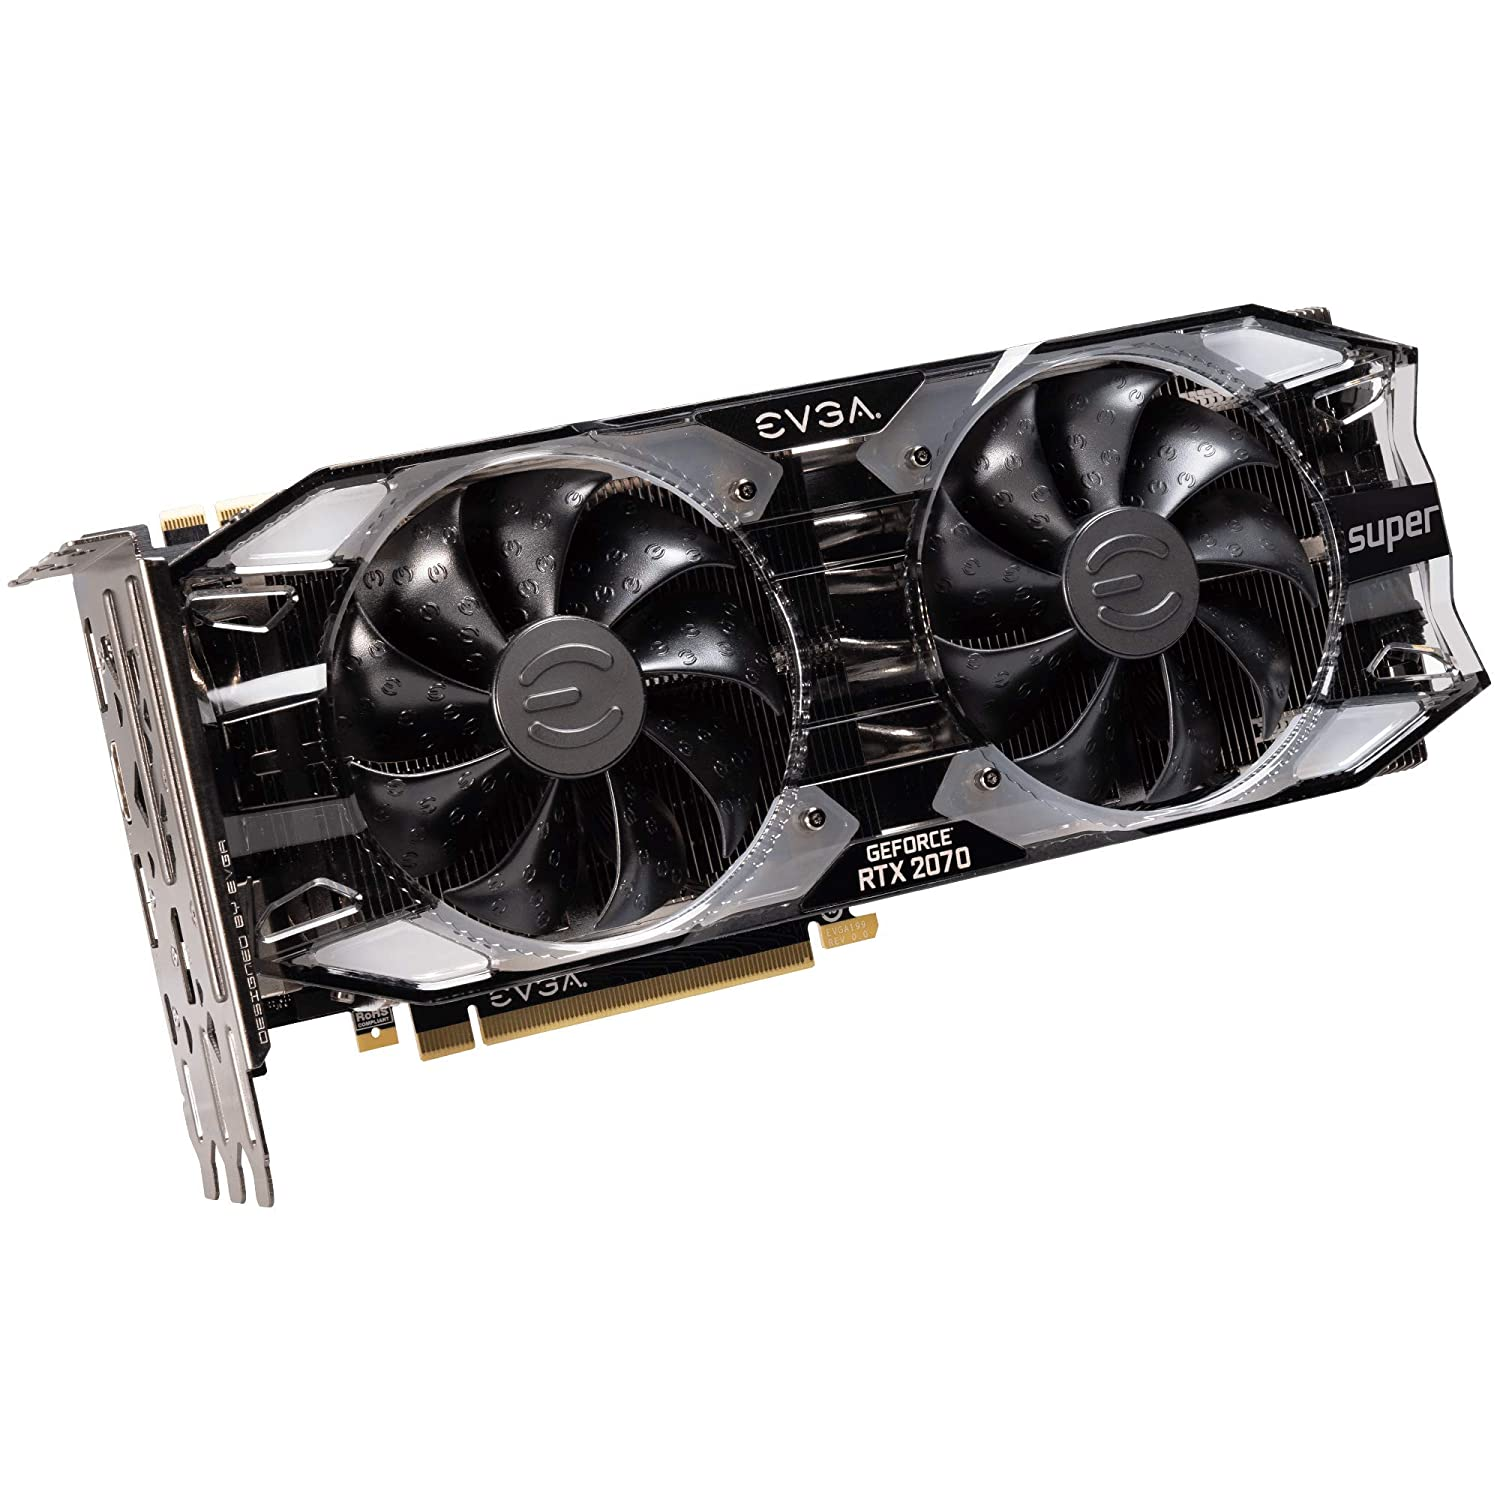 Best High-End Gaming PC Build for $1500 in July 2019 | PC Game Haven